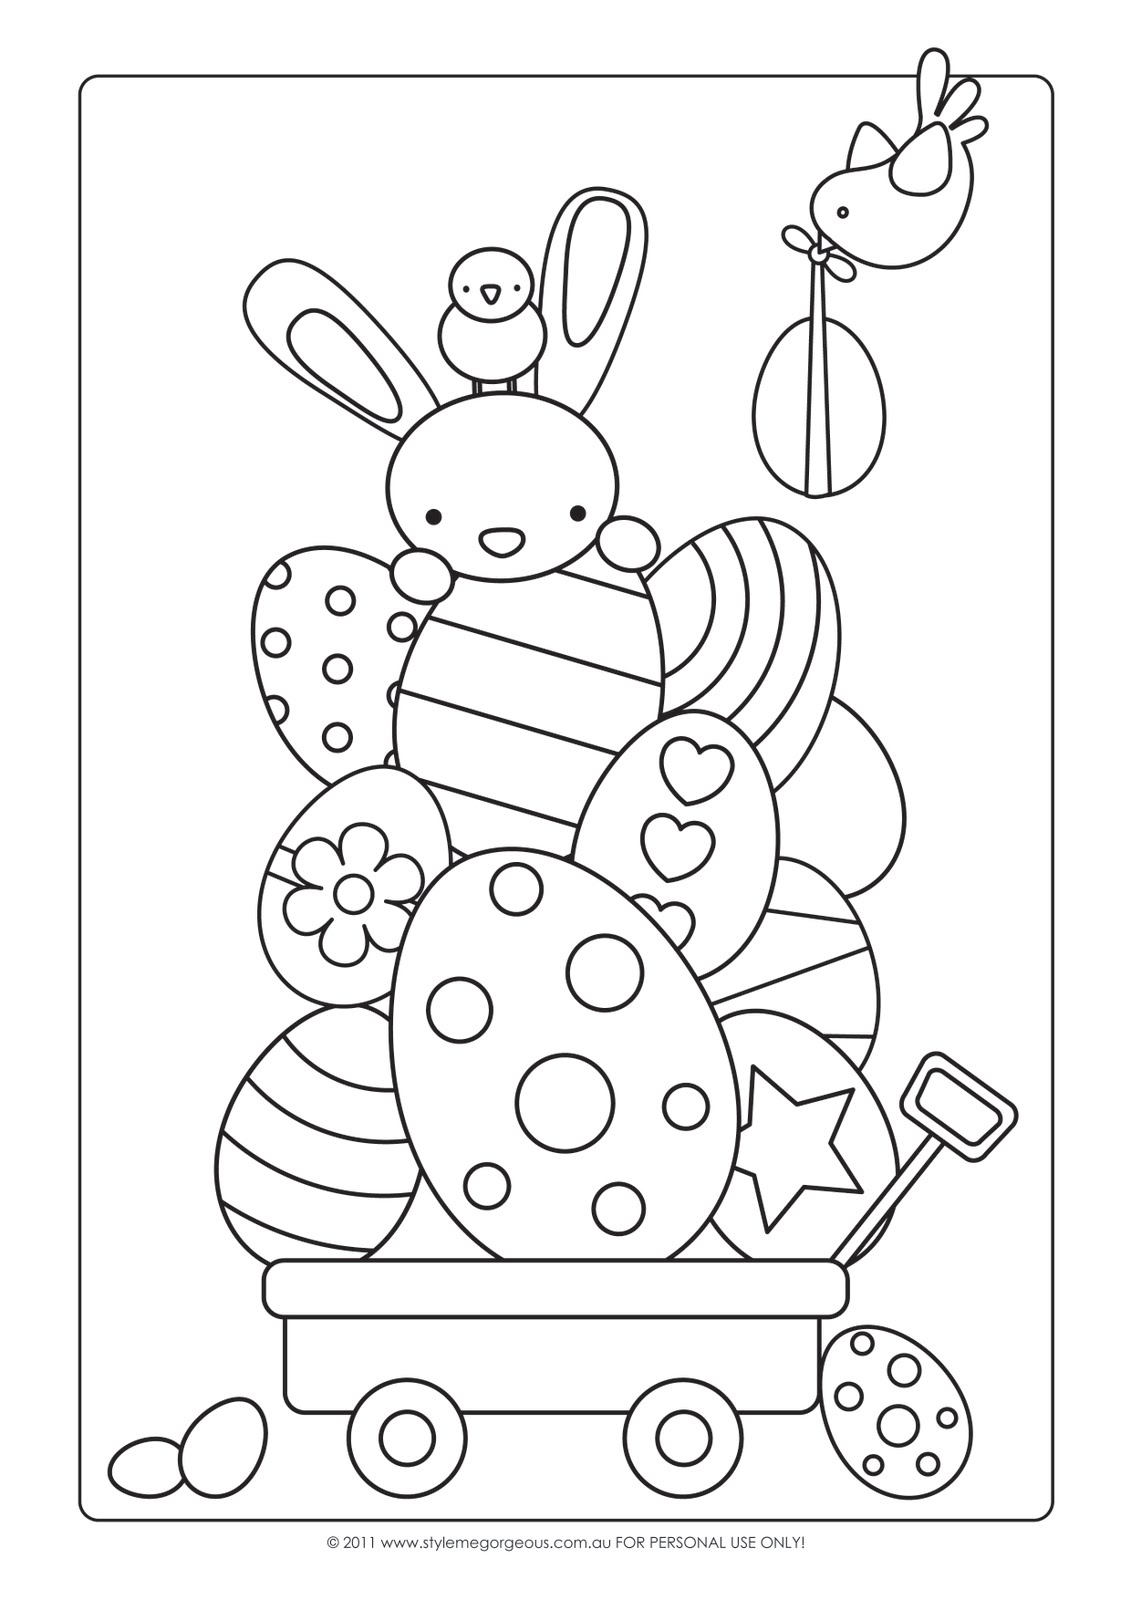 Style me gorgeous free easter colour in page for Free online easter bunny coloring pages